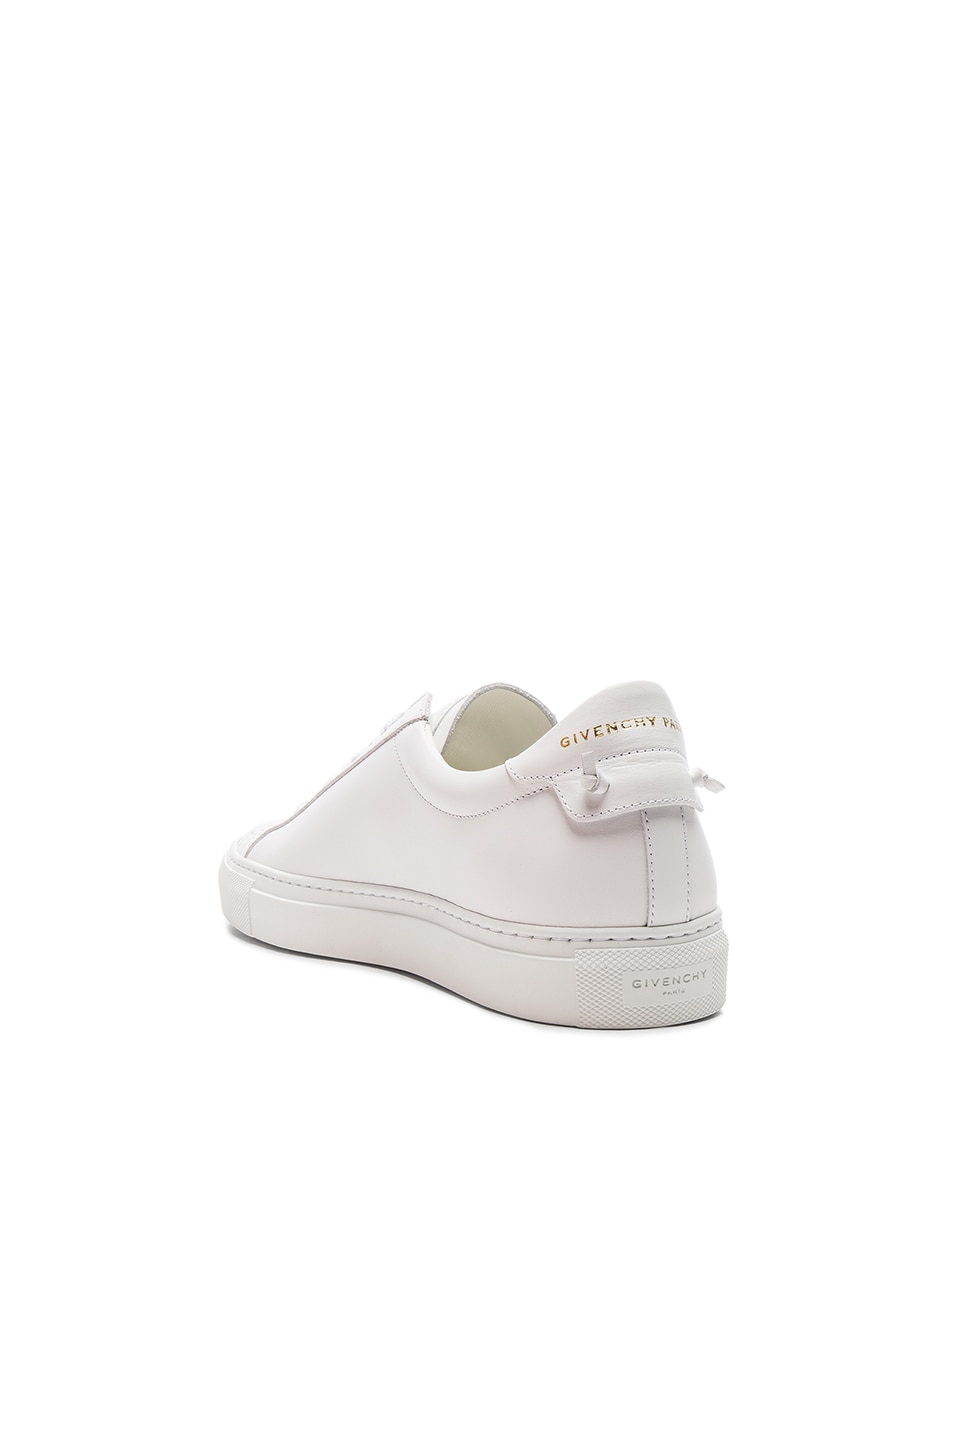 Image 3 of Givenchy Leather Urban Tie Knot Sneakers in White